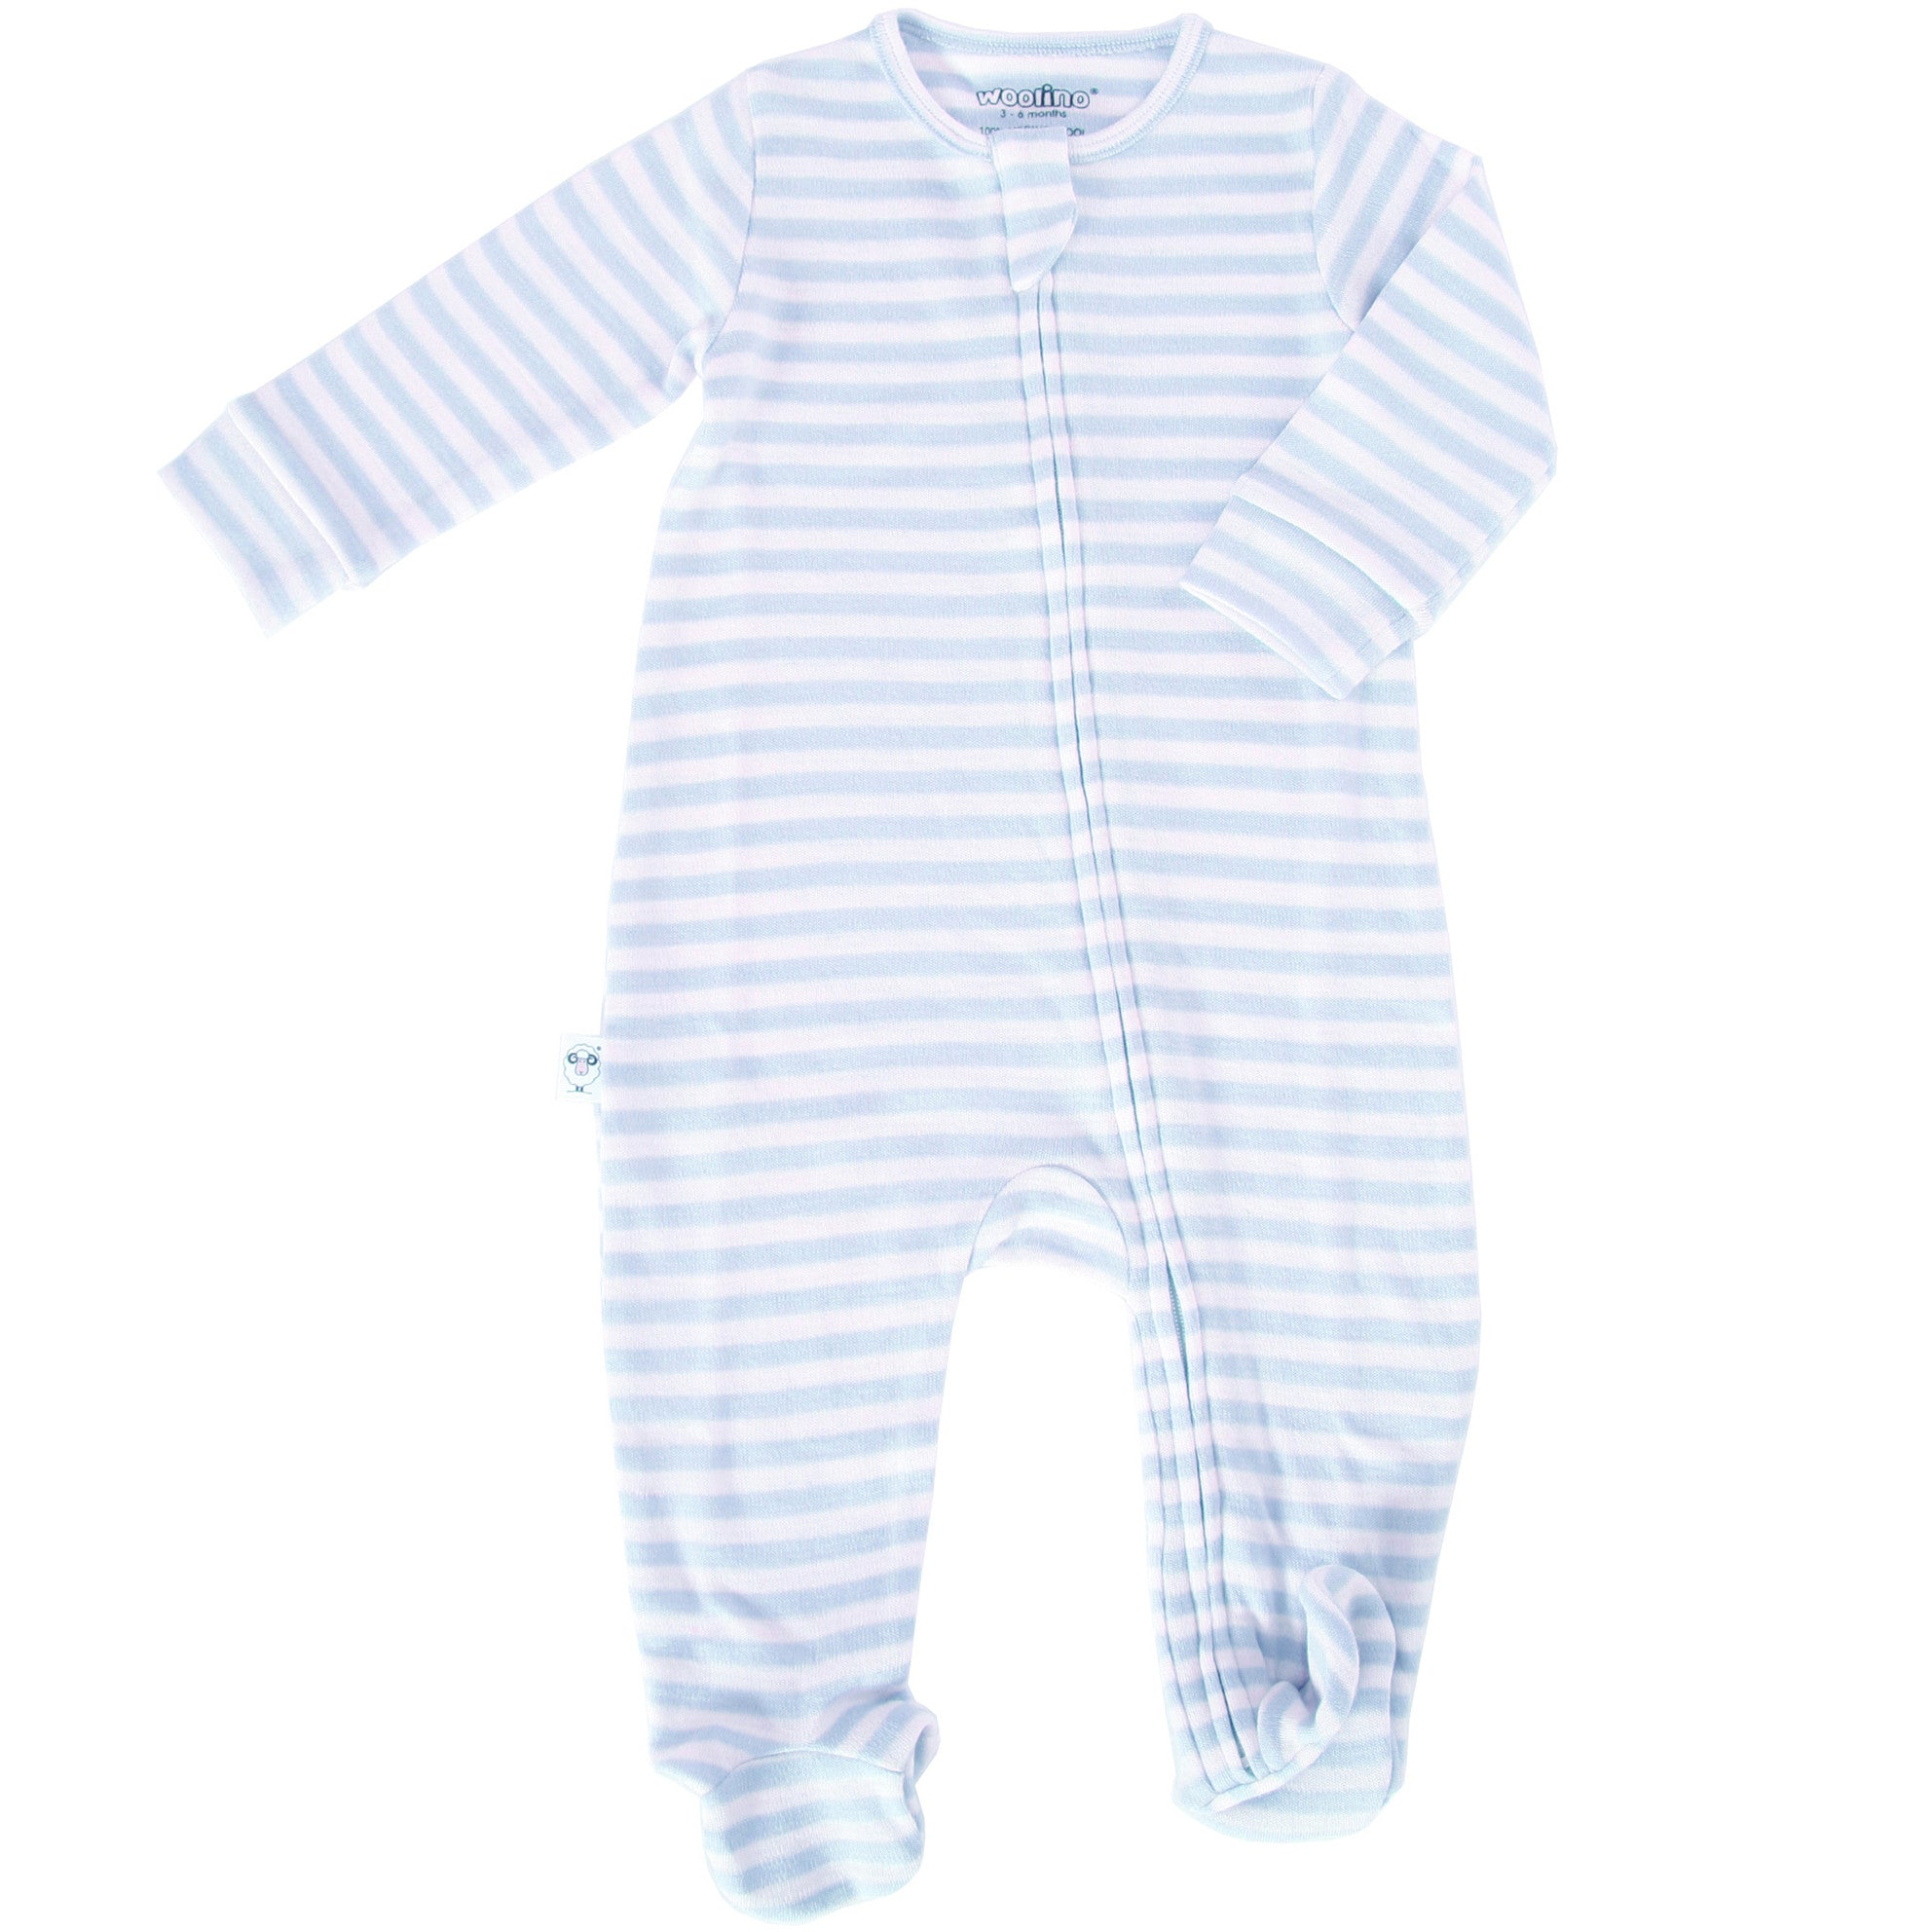 Footie Pajamas, Merino Wool, Blue